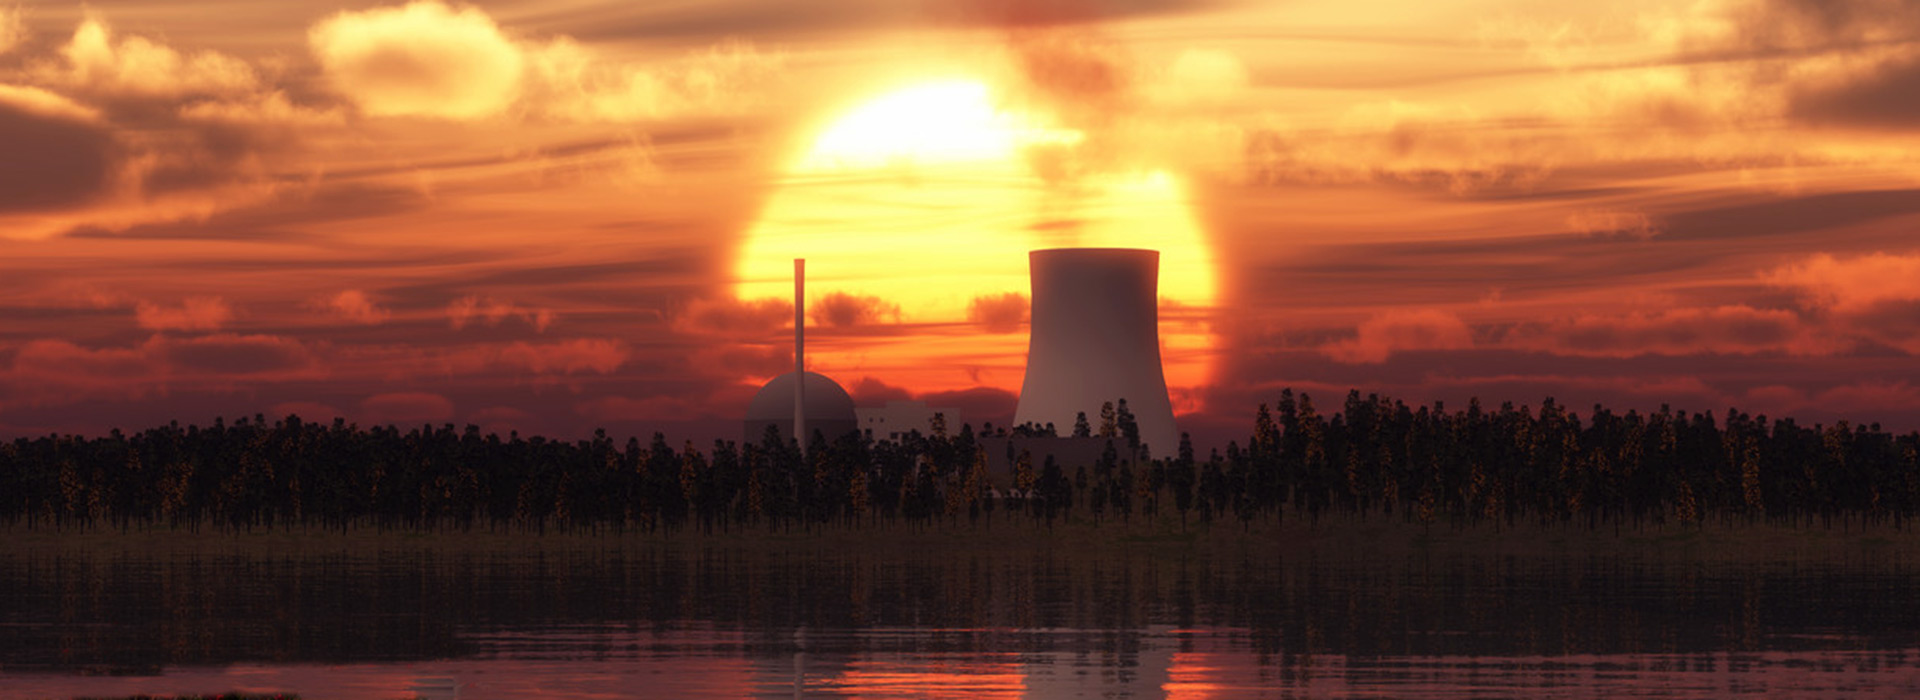 Nuclear power decommissioning services